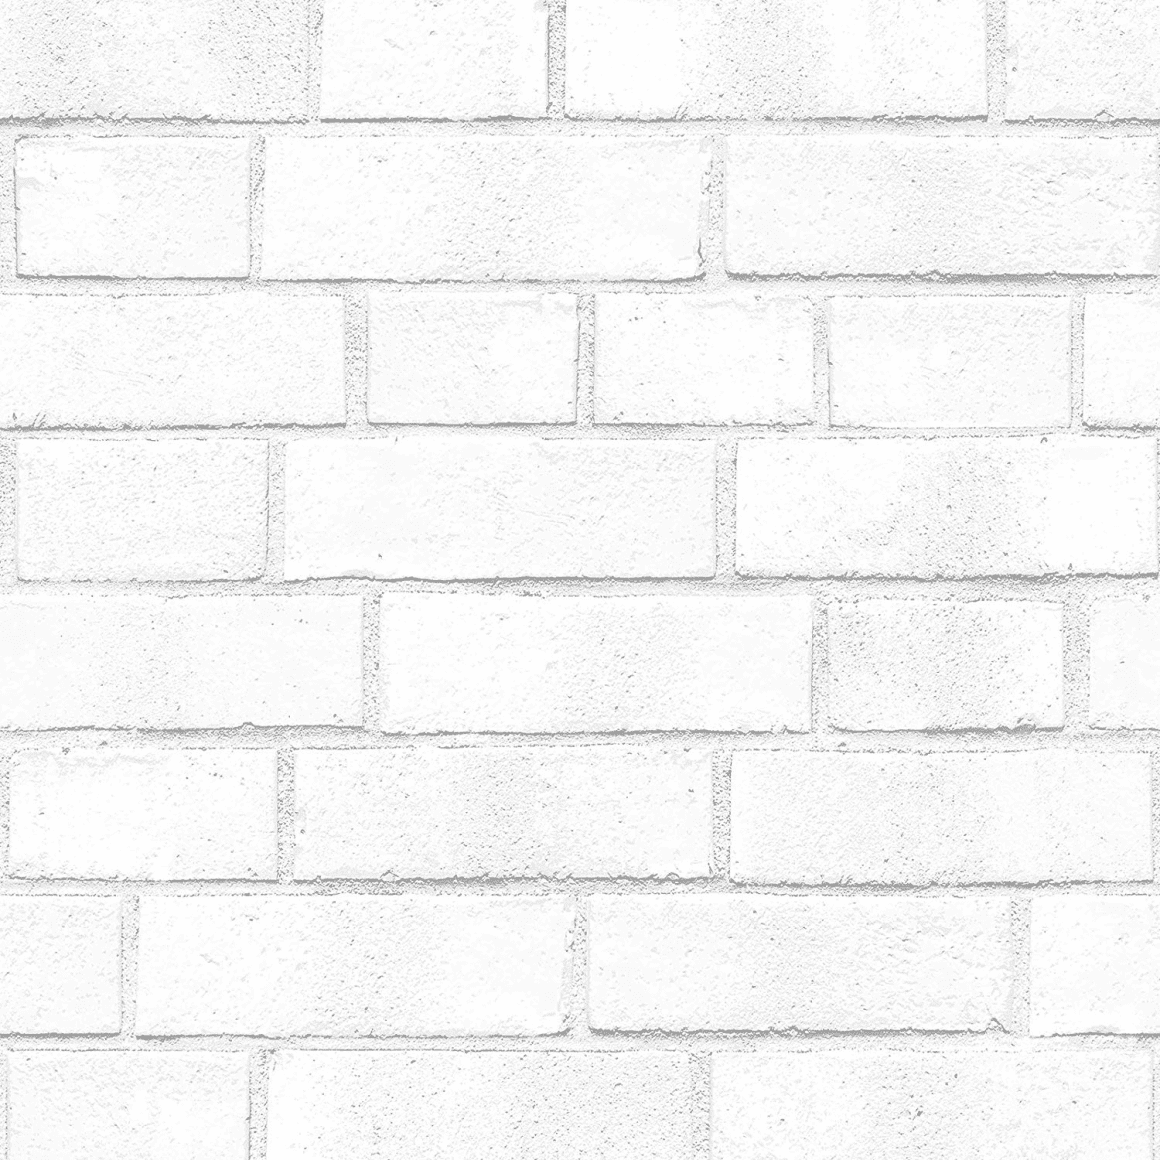 10 Problem Solving Kitchen Essentials From Amazon Apartment Therapy Removable Brick Wallpaper Brick Wallpaper Textured Brick Wallpaper